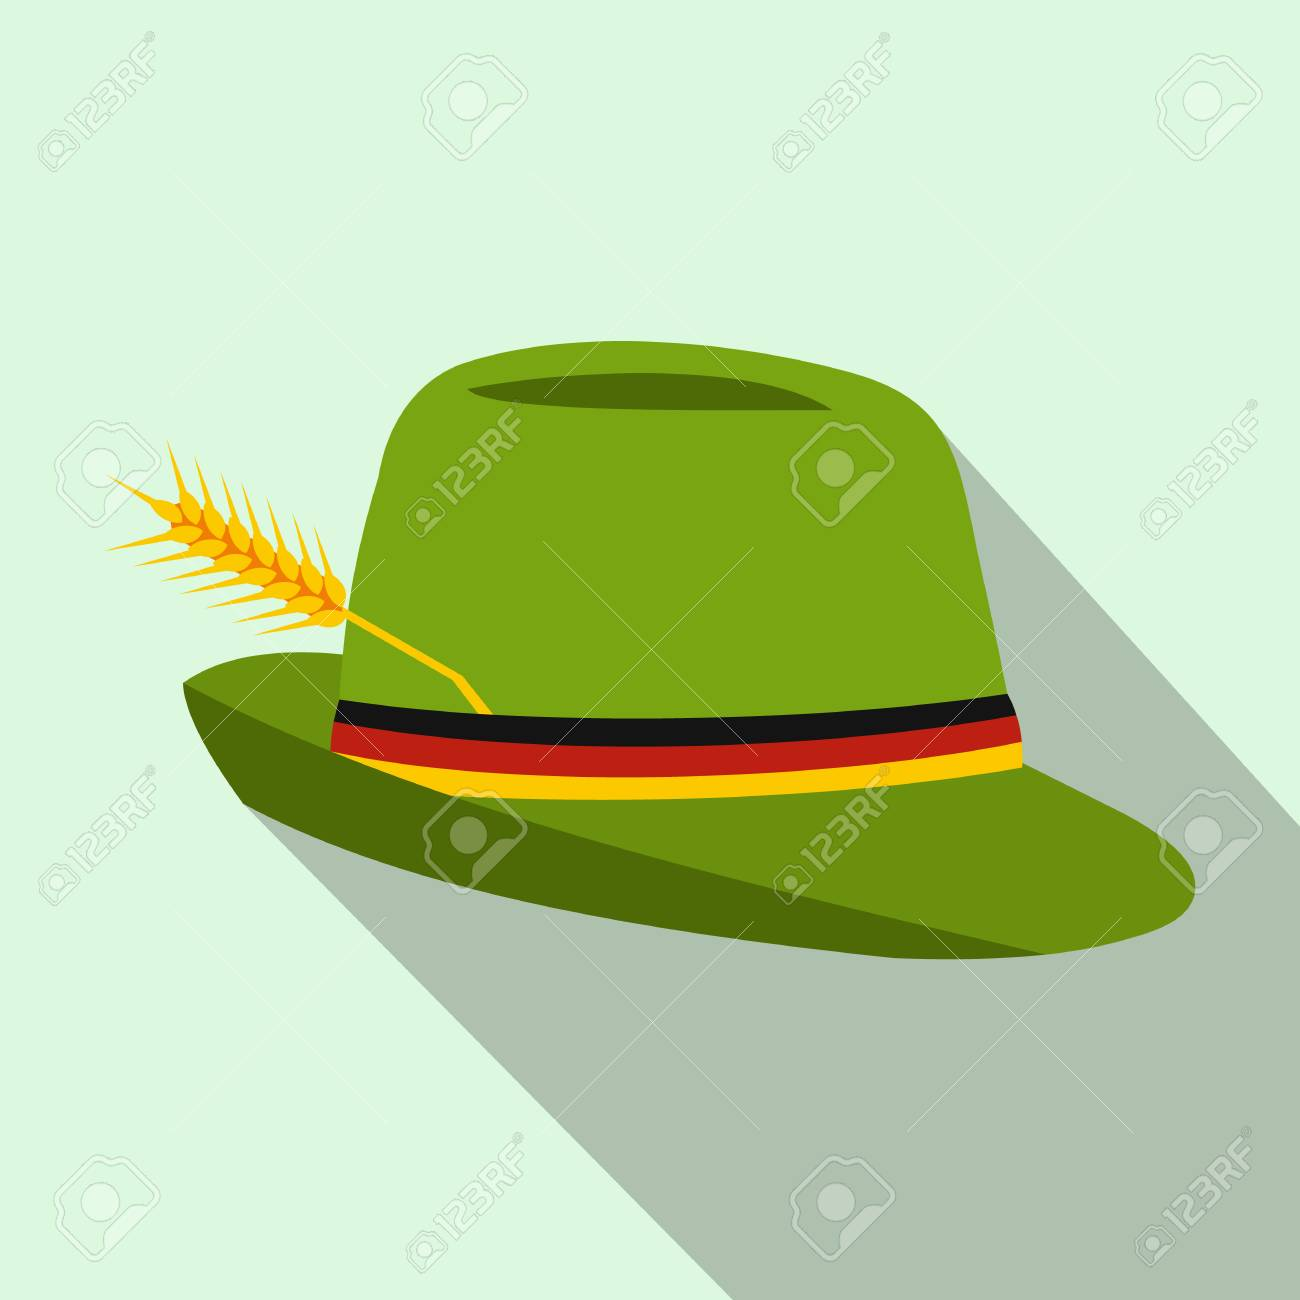 eb9875a53a3 Green hat with a feather icon in flat style on a light blue background Stock  Photo